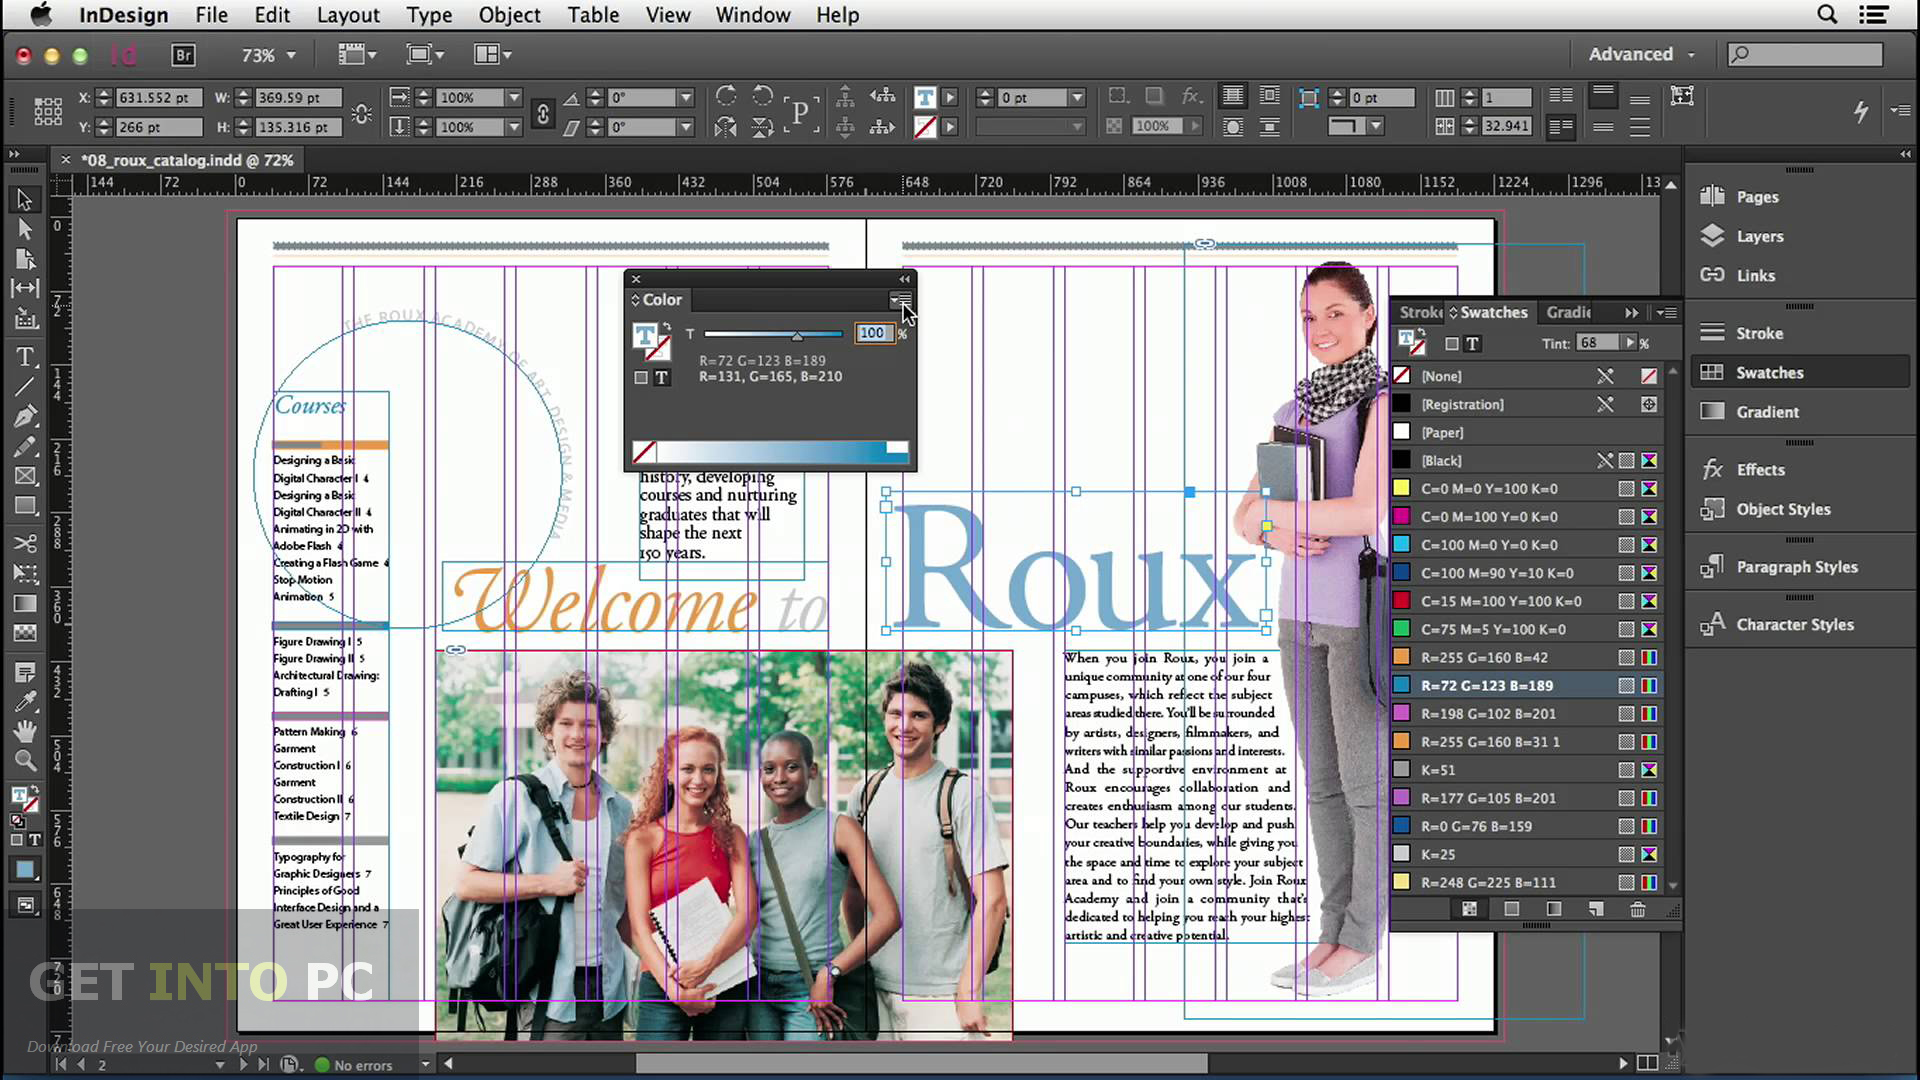 what is the latest version of indesign